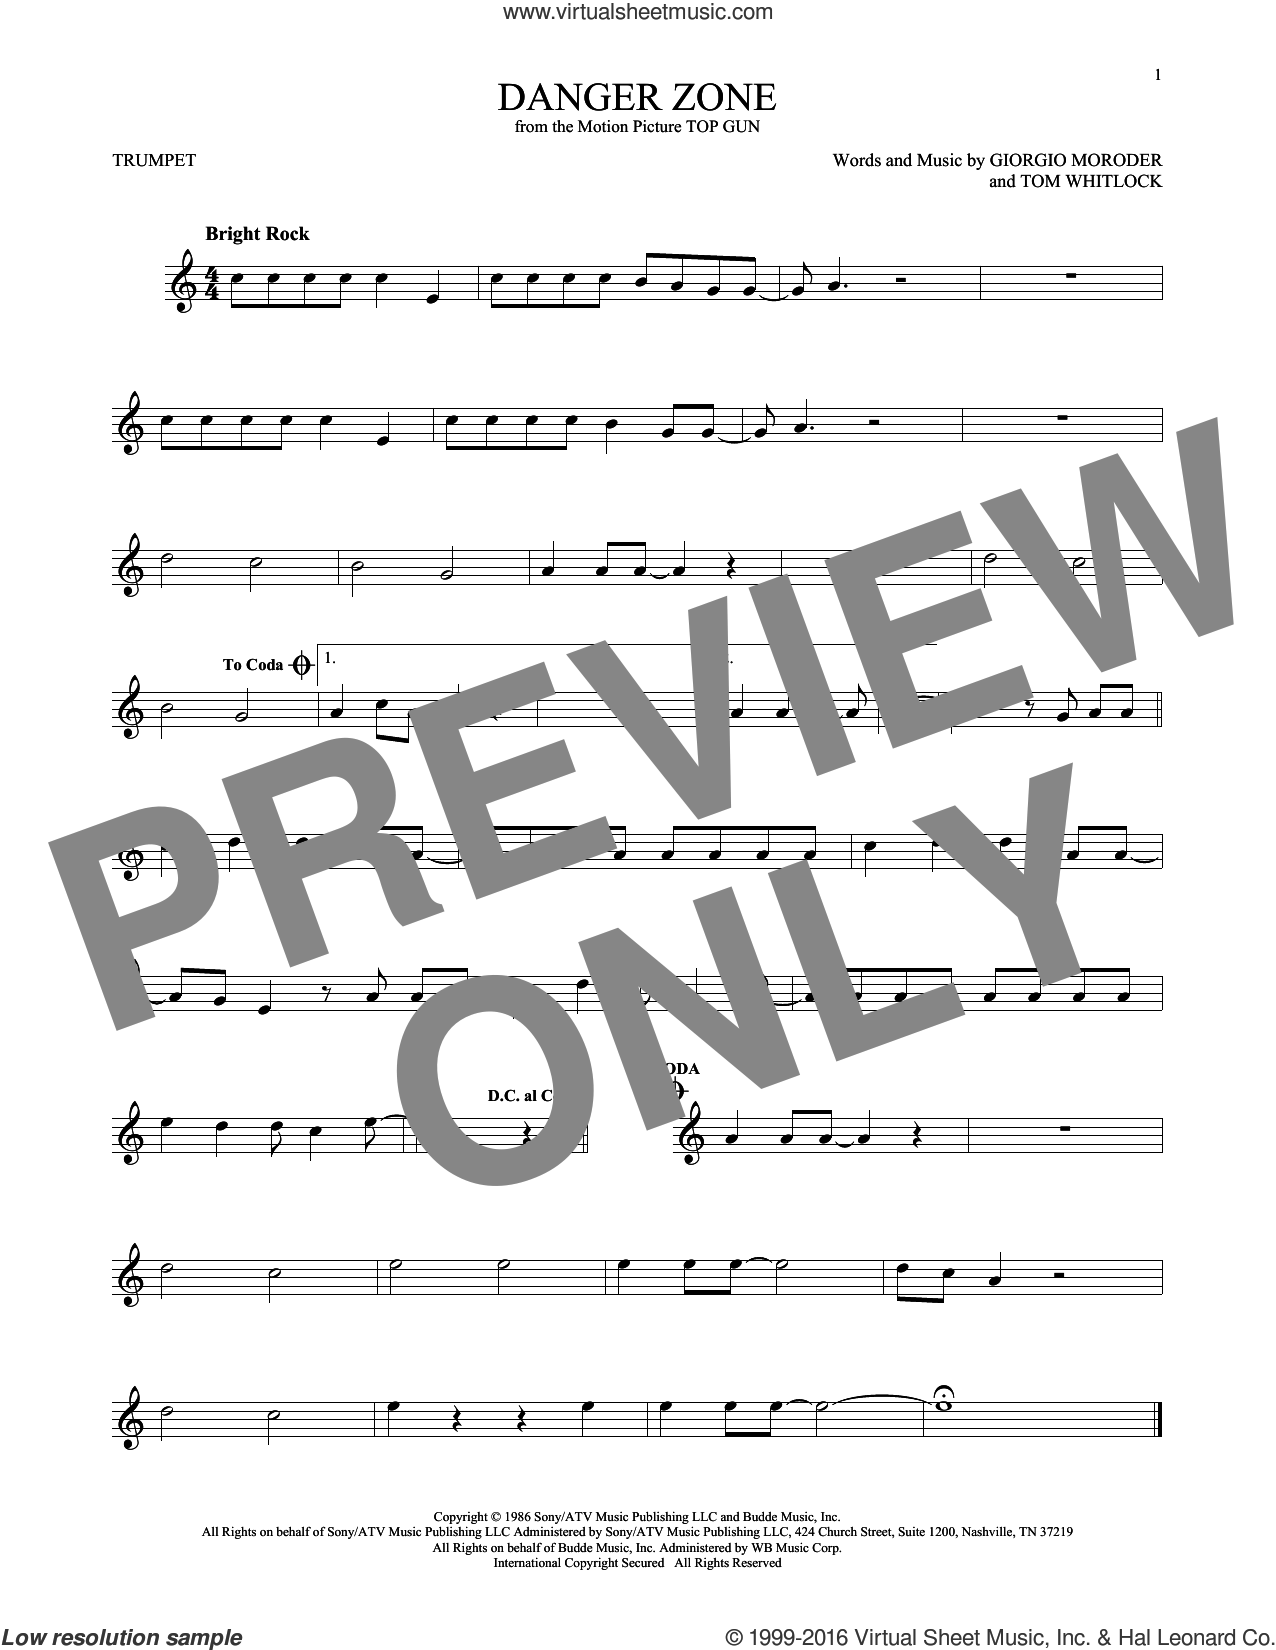 Danger Zone sheet music for trumpet solo by Kenny Loggins, Giorgio Moroder and Tom Whitlock, intermediate skill level